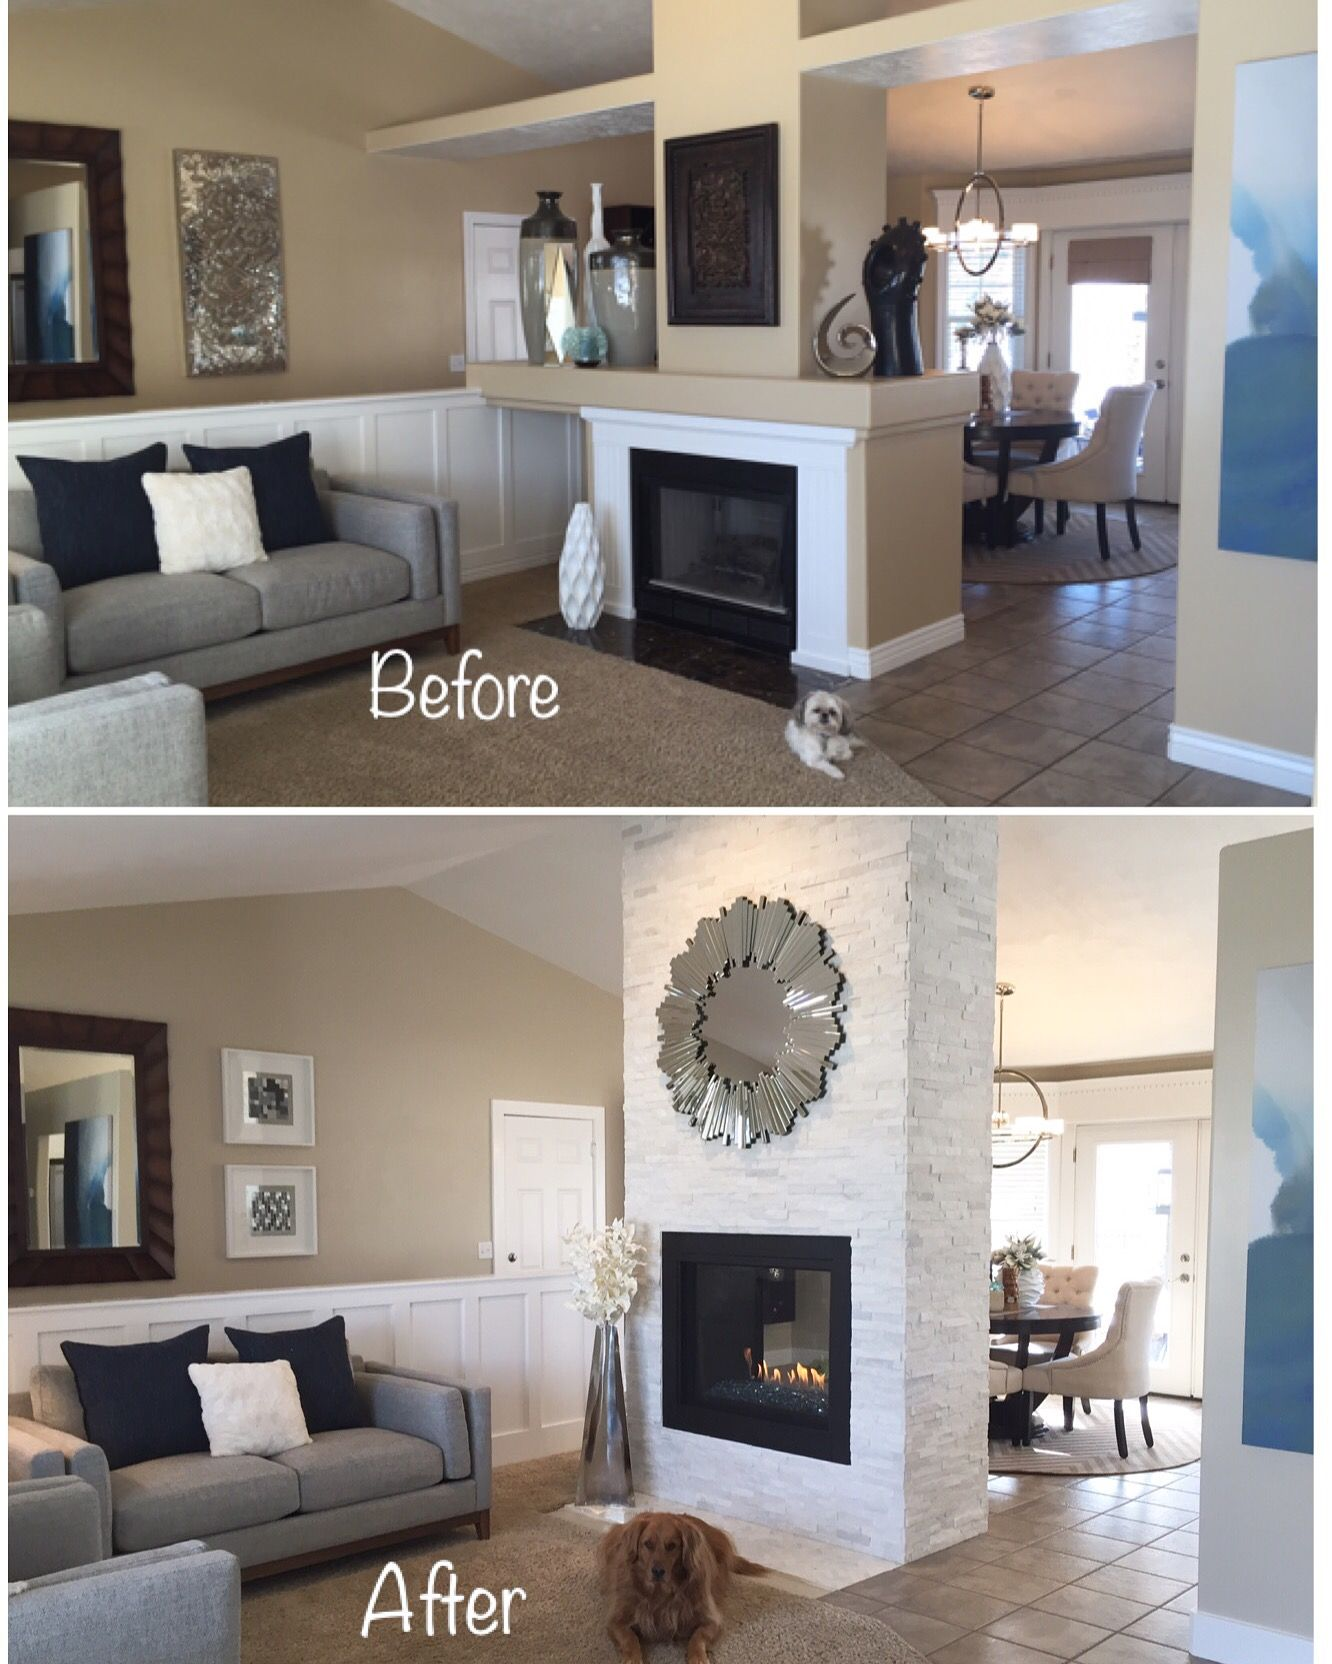 Fireplace Remodel See Through Fireplace Artic White Ledgestone Fireplace Remodel Home Fireplace See Through Fireplace